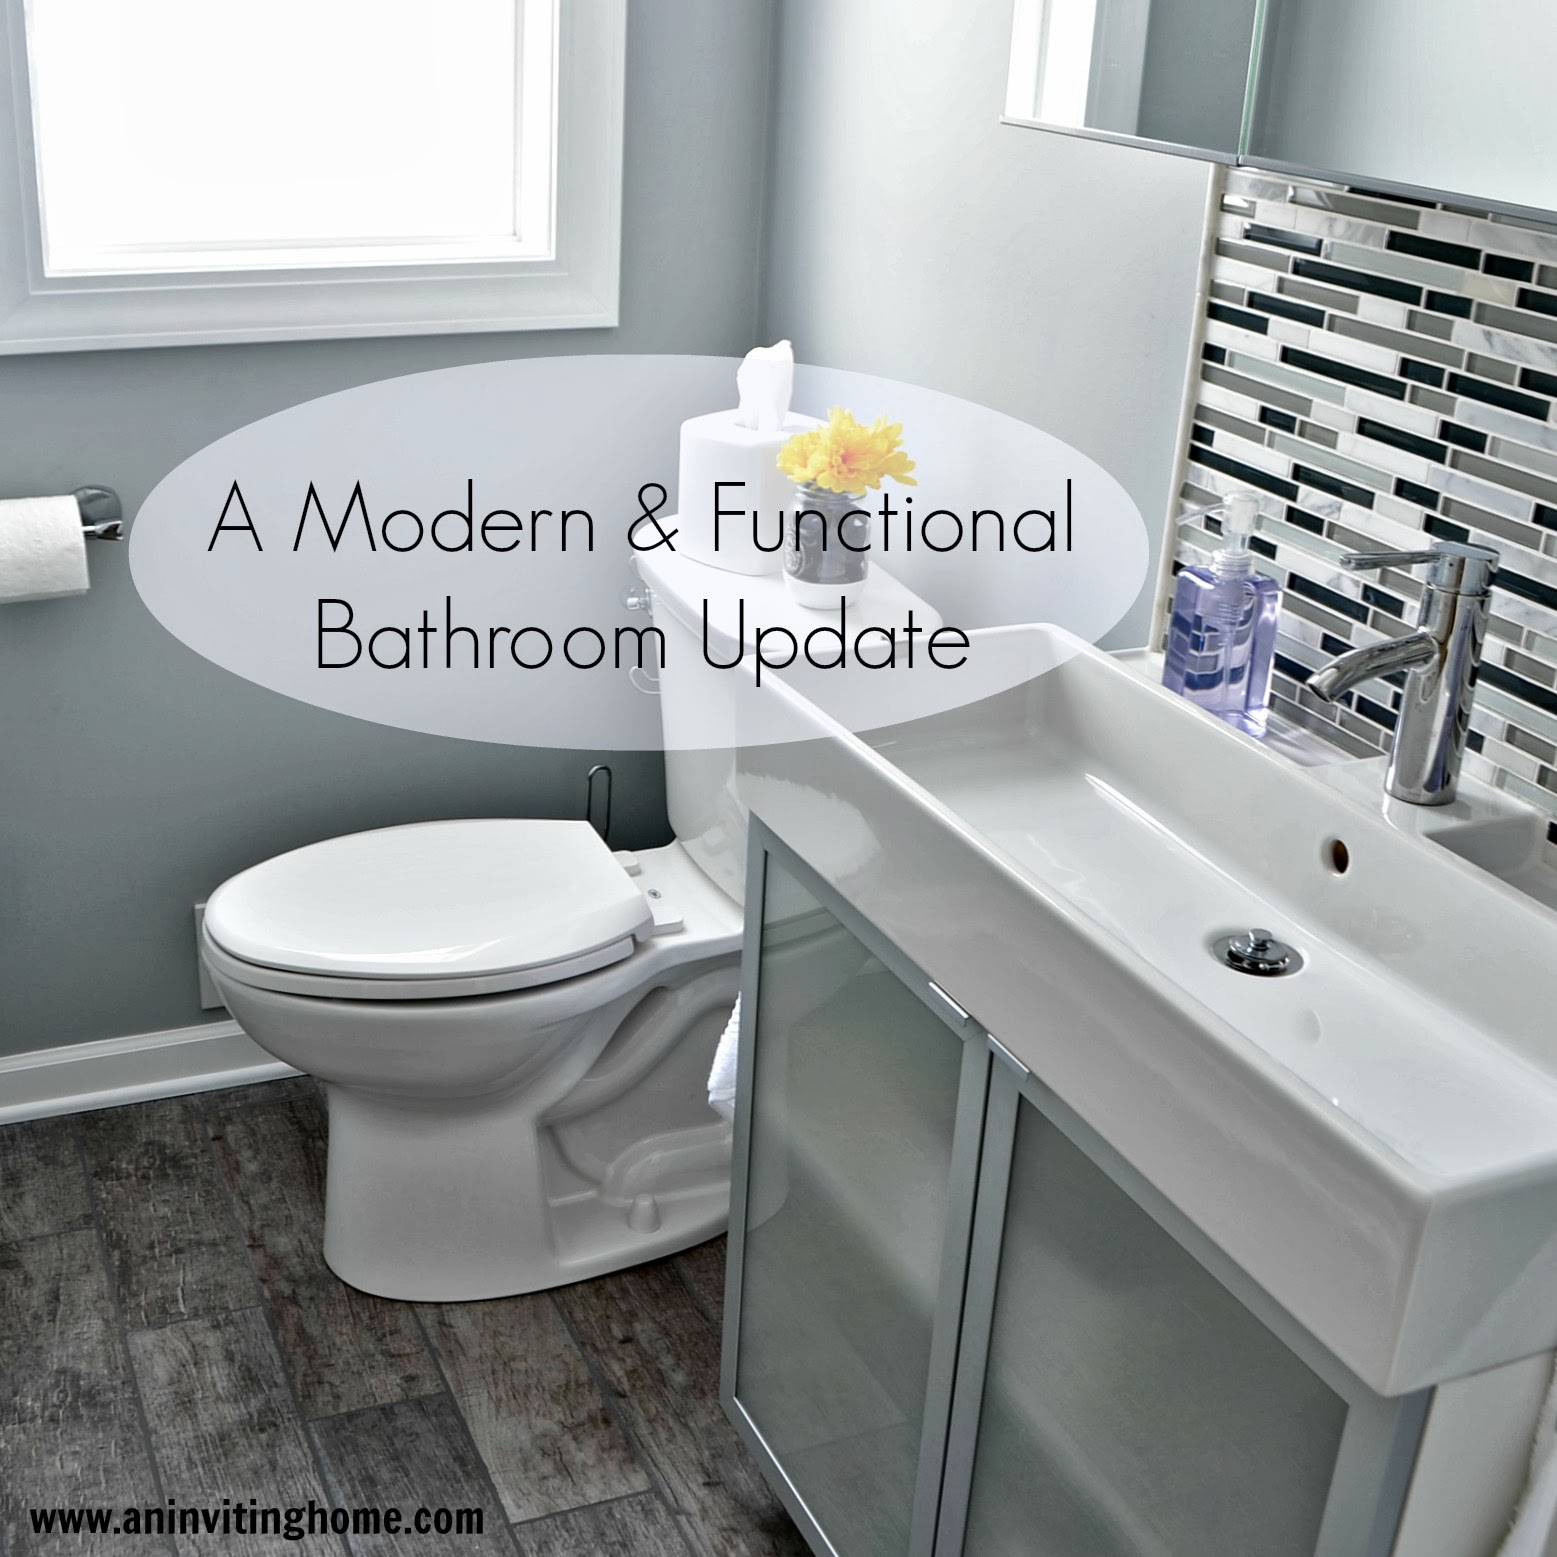 Nice modern and functional bathroom update An Inviting Home on Remodelaholic